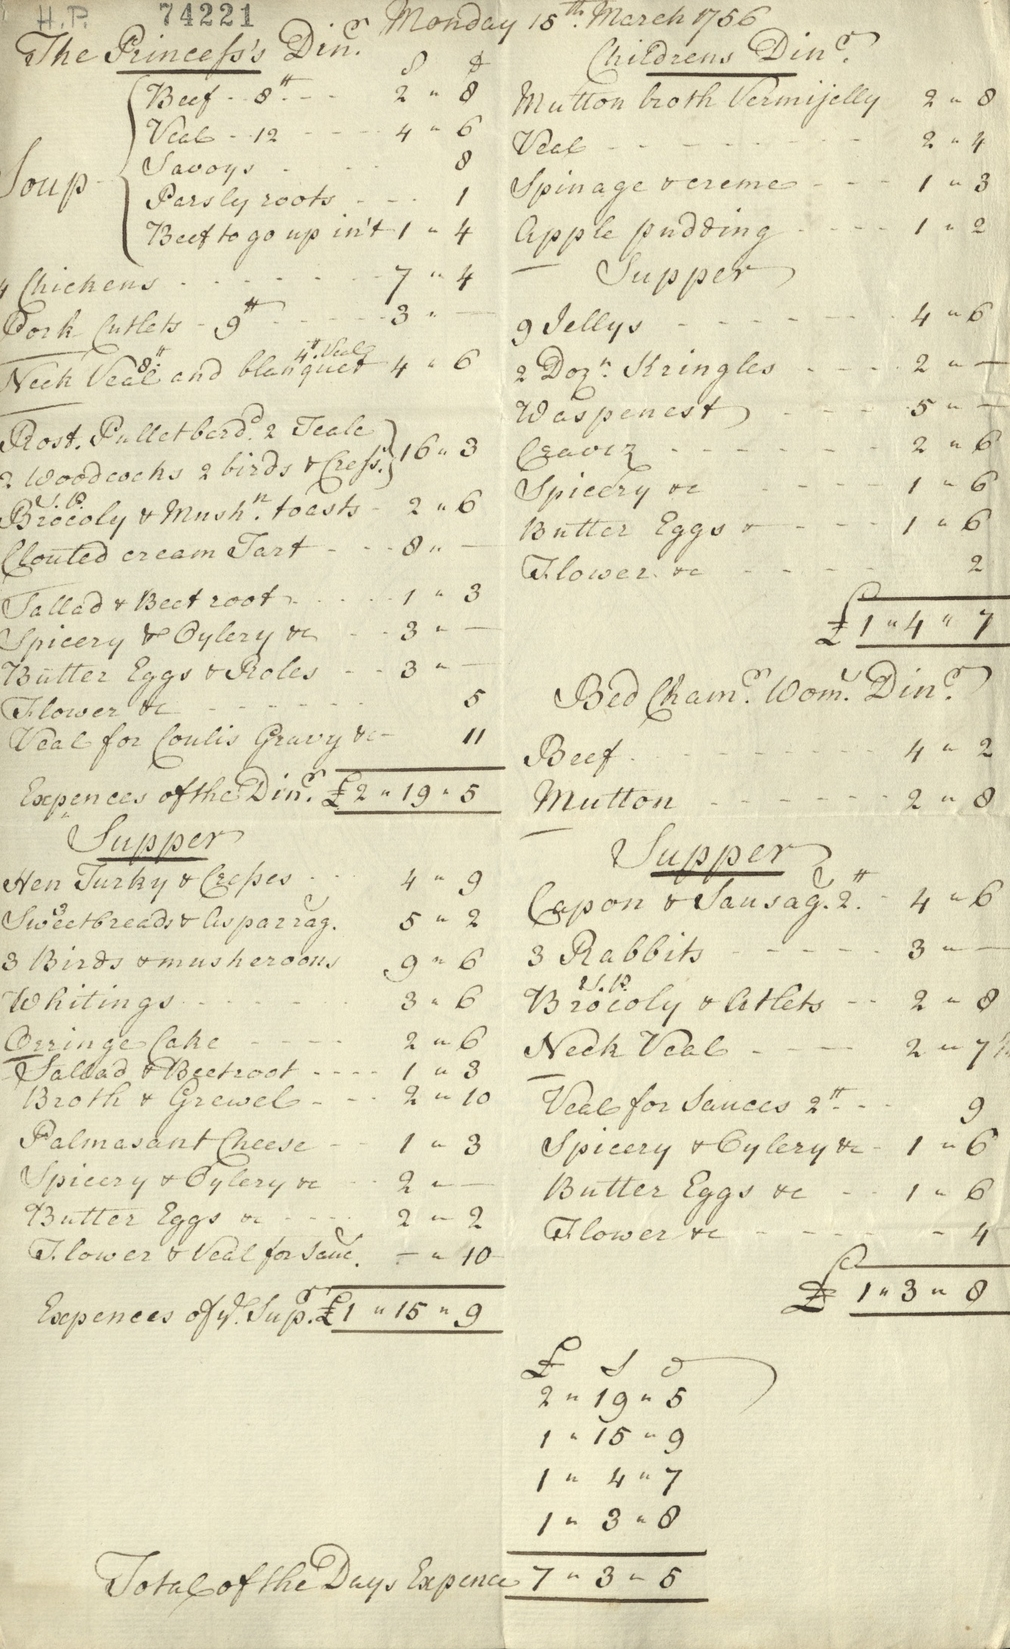 Bill showing cost of one day's food for Princess Augusta